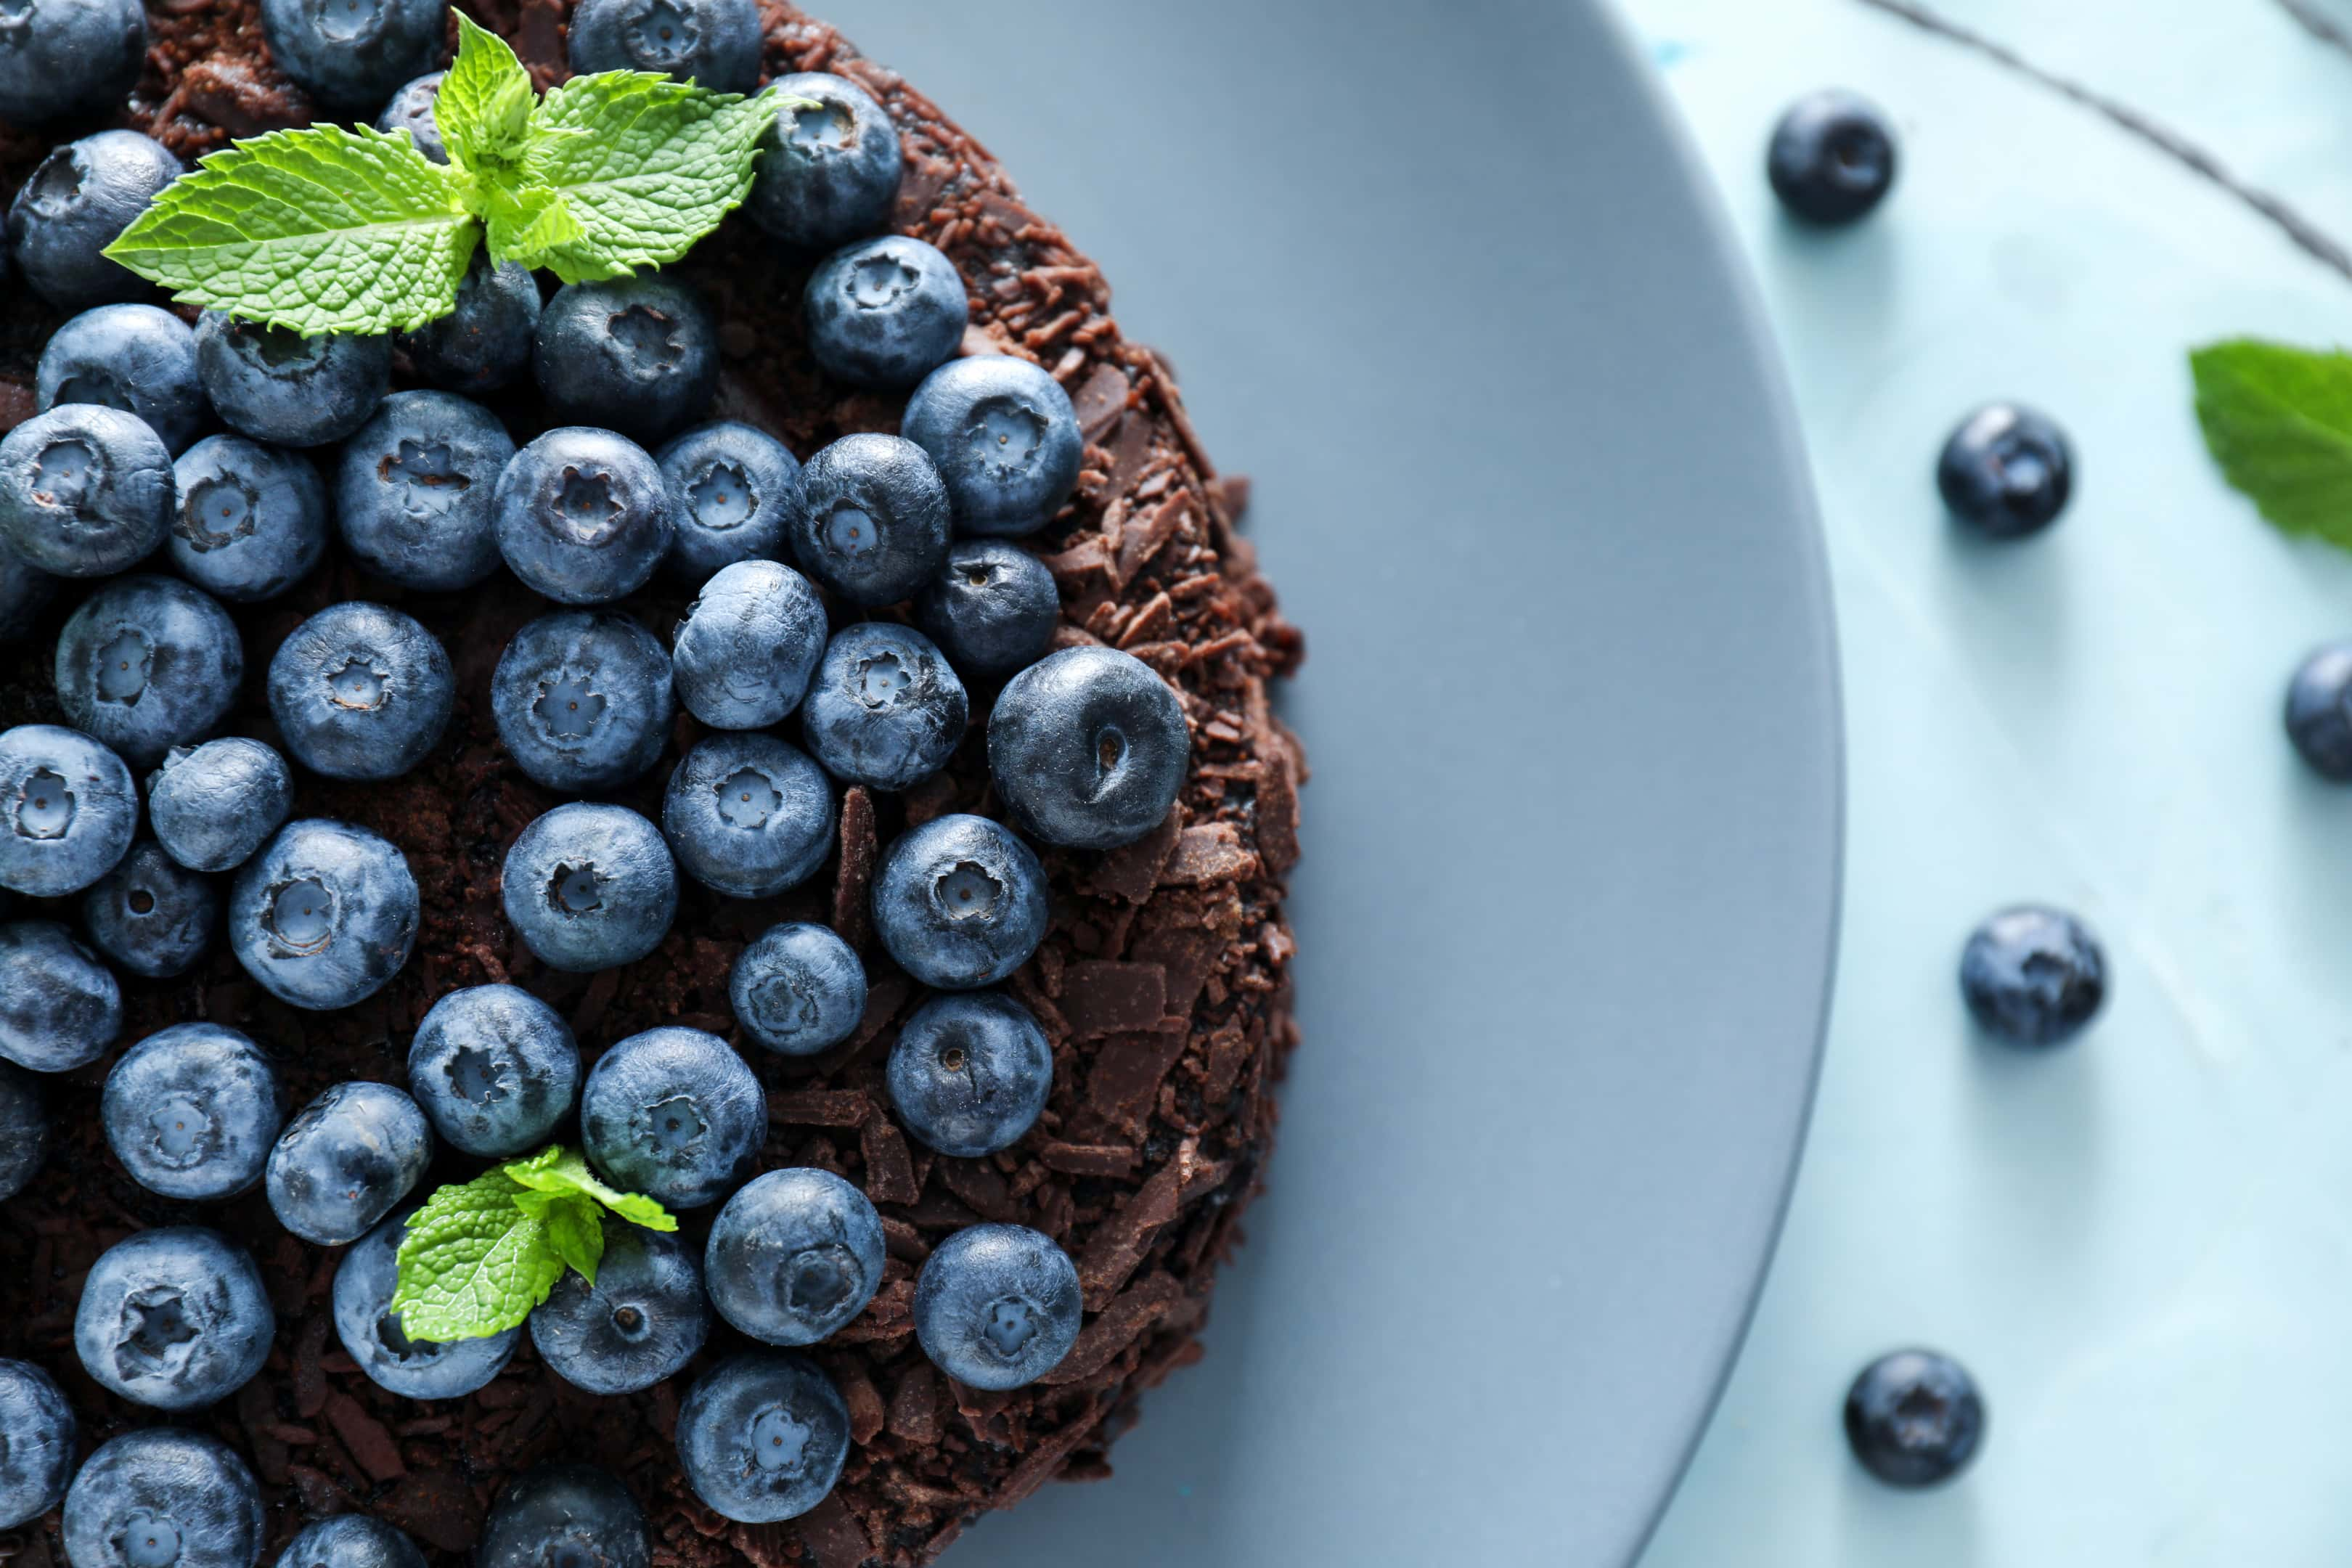 Delicious blueberry chocolate cake on plate